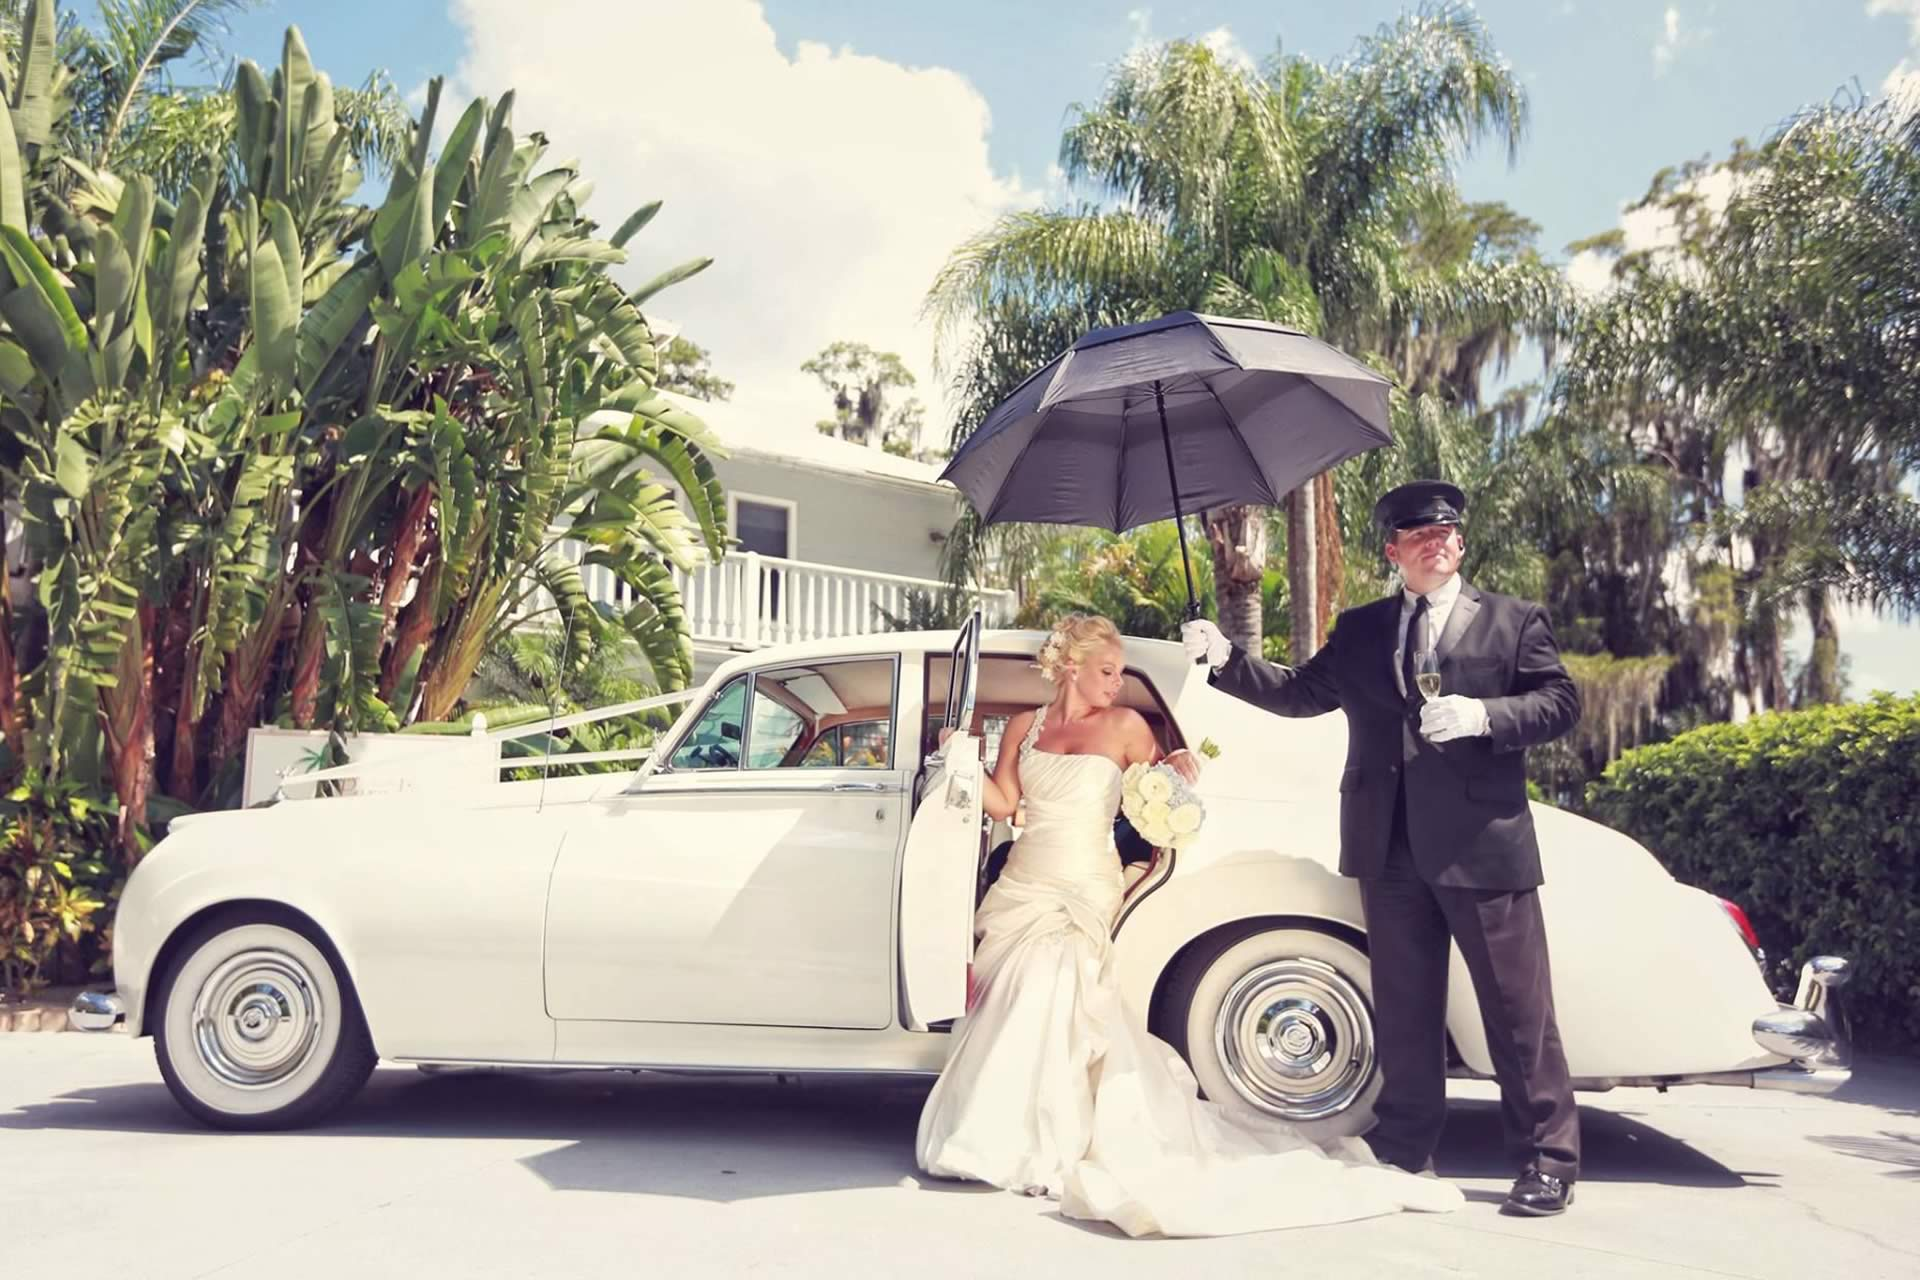 VIP Wedding Transportation - Image provided by: CastaldoStudio.com